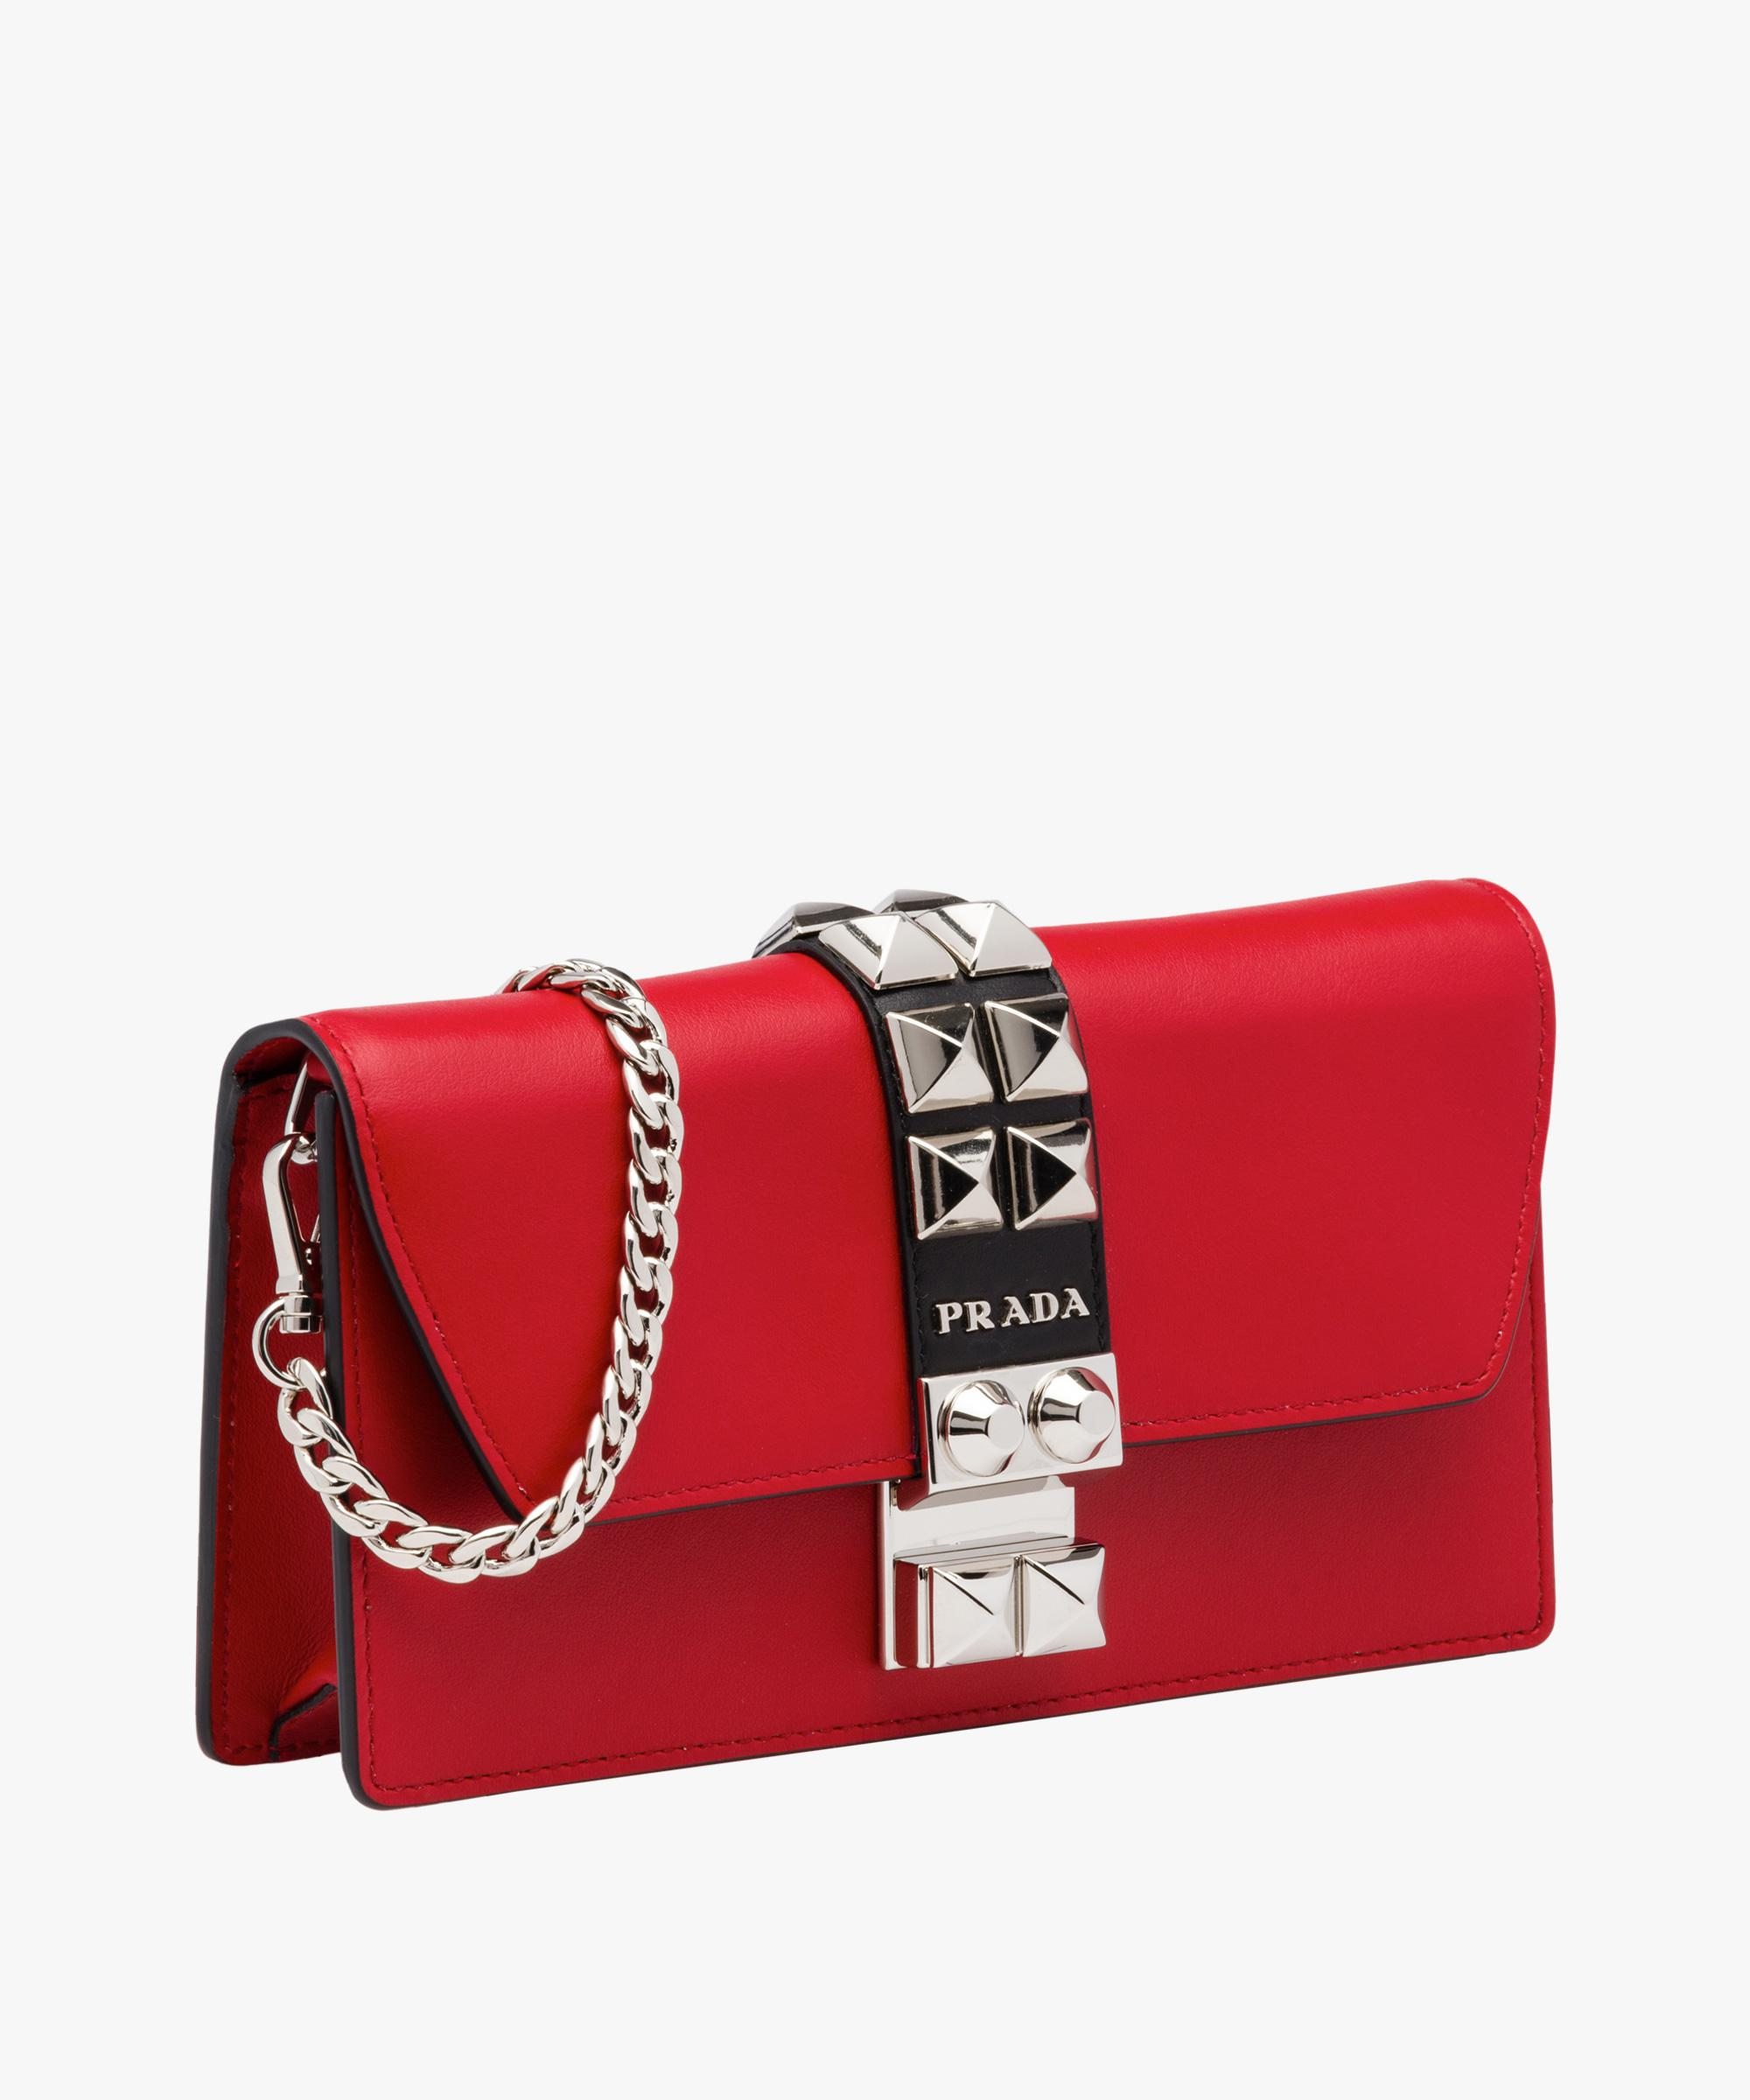 eb2e7f7d92 Lyst - Prada Elektra Studded Clutch in Red